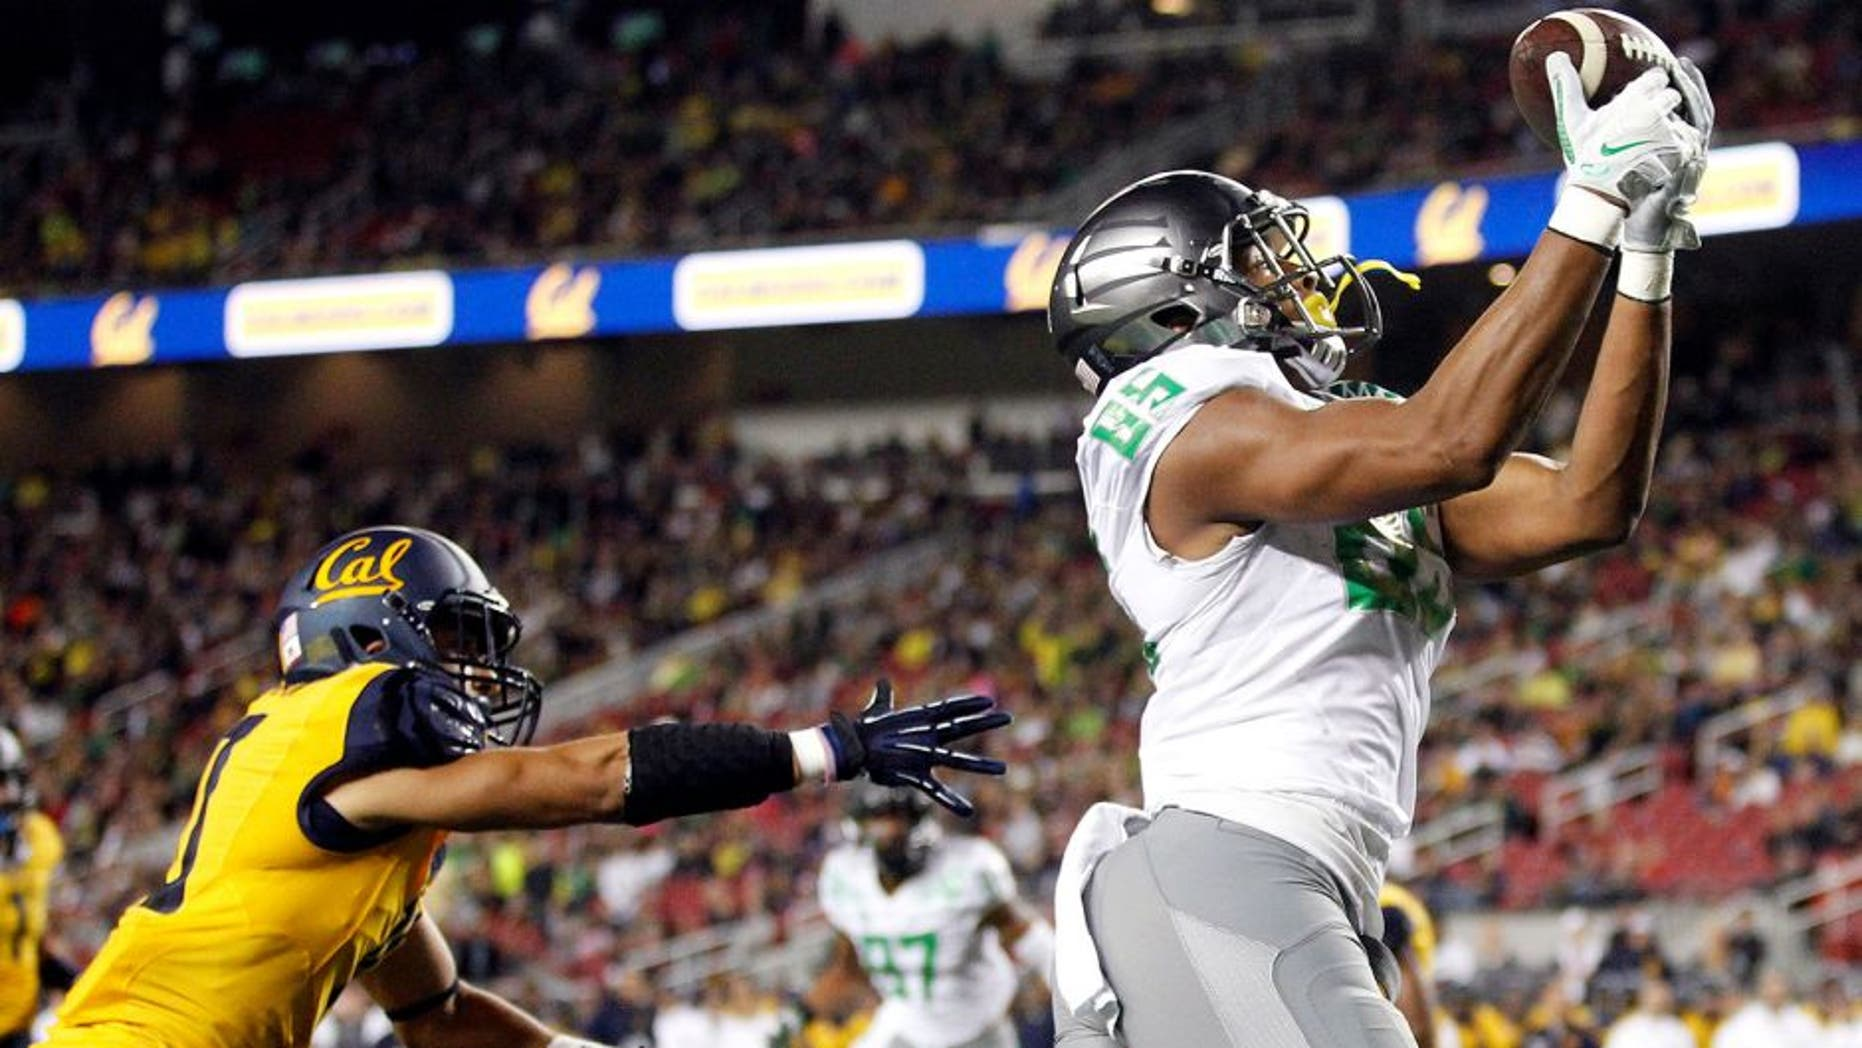 Oct 24, 2014; Santa Clara, CA, USA; Oregon Ducks tight end Pharaoh Brown (85) catches a touchdown pass against the California Golden Bears in the second quarter at Levi's Stadium. Mandatory Credit: Cary Edmondson-USA TODAY Sports